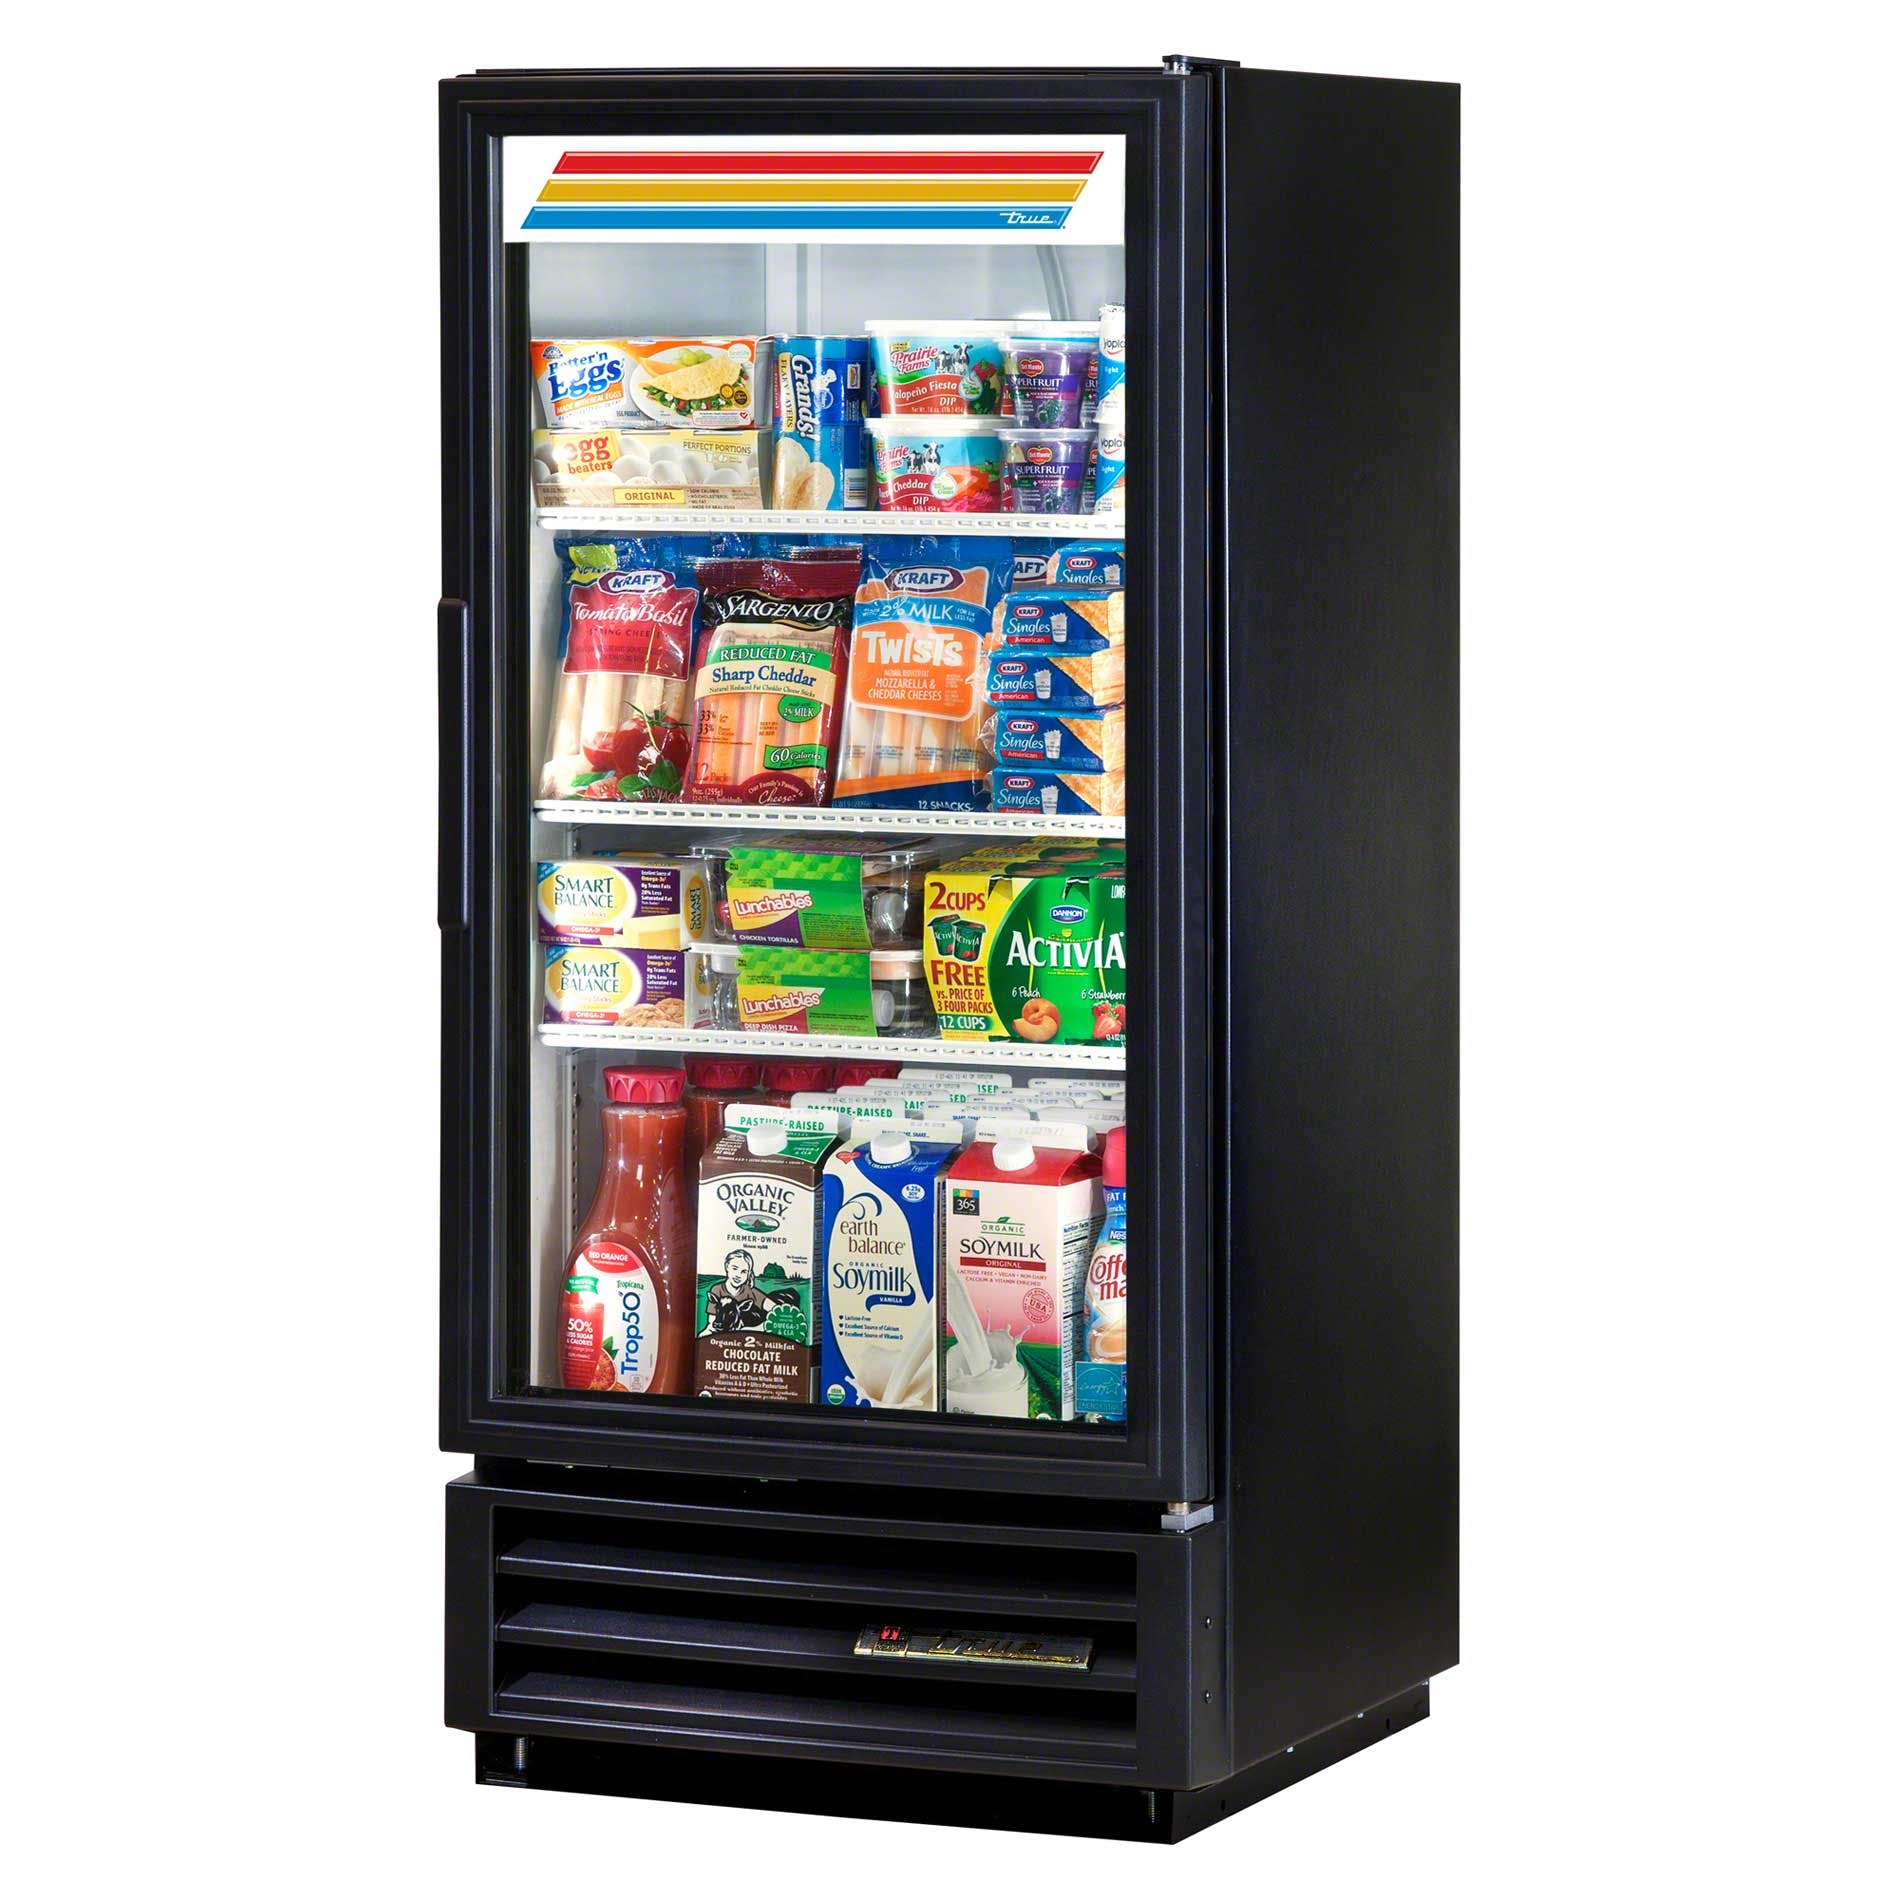 "True - GDM-10-LD 25"" Swing Glass Door Merchandiser Refrigerator LED Commercial refrigerator sold by Food Service Warehouse"